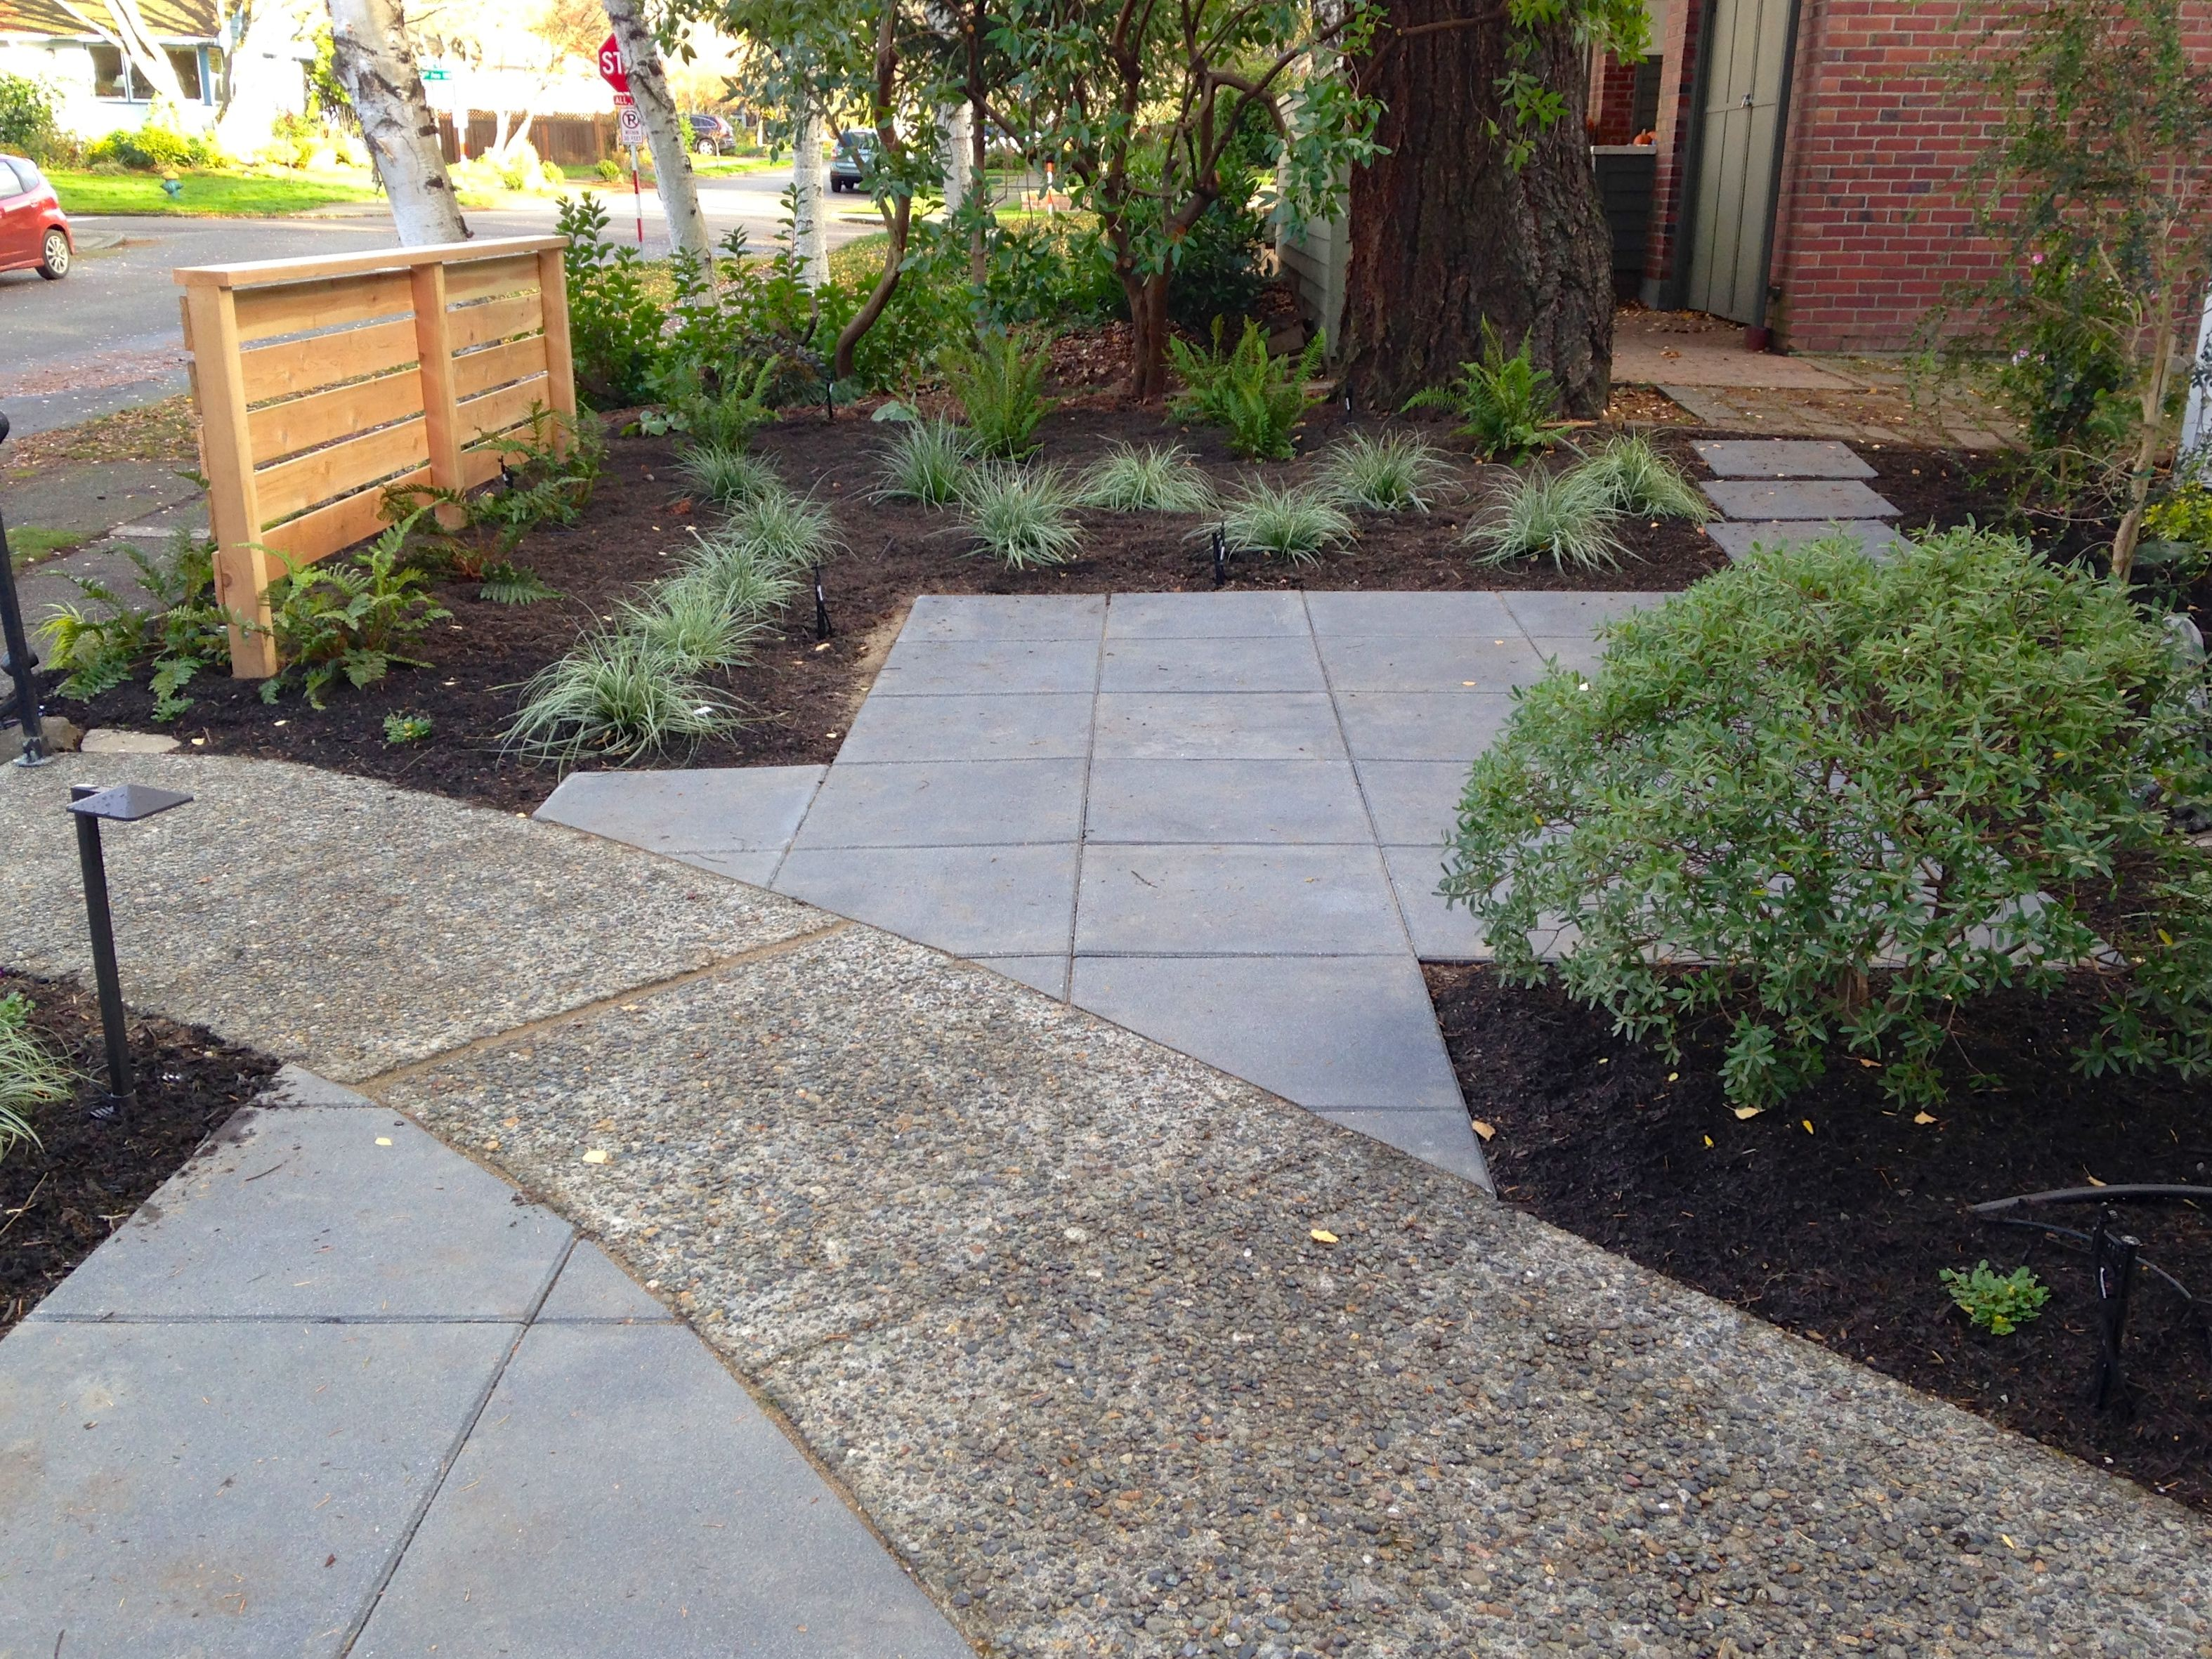 Patio Incorporated Into Existing Walkway Gretchen Bauer Design Hardscape Side Yard Garden